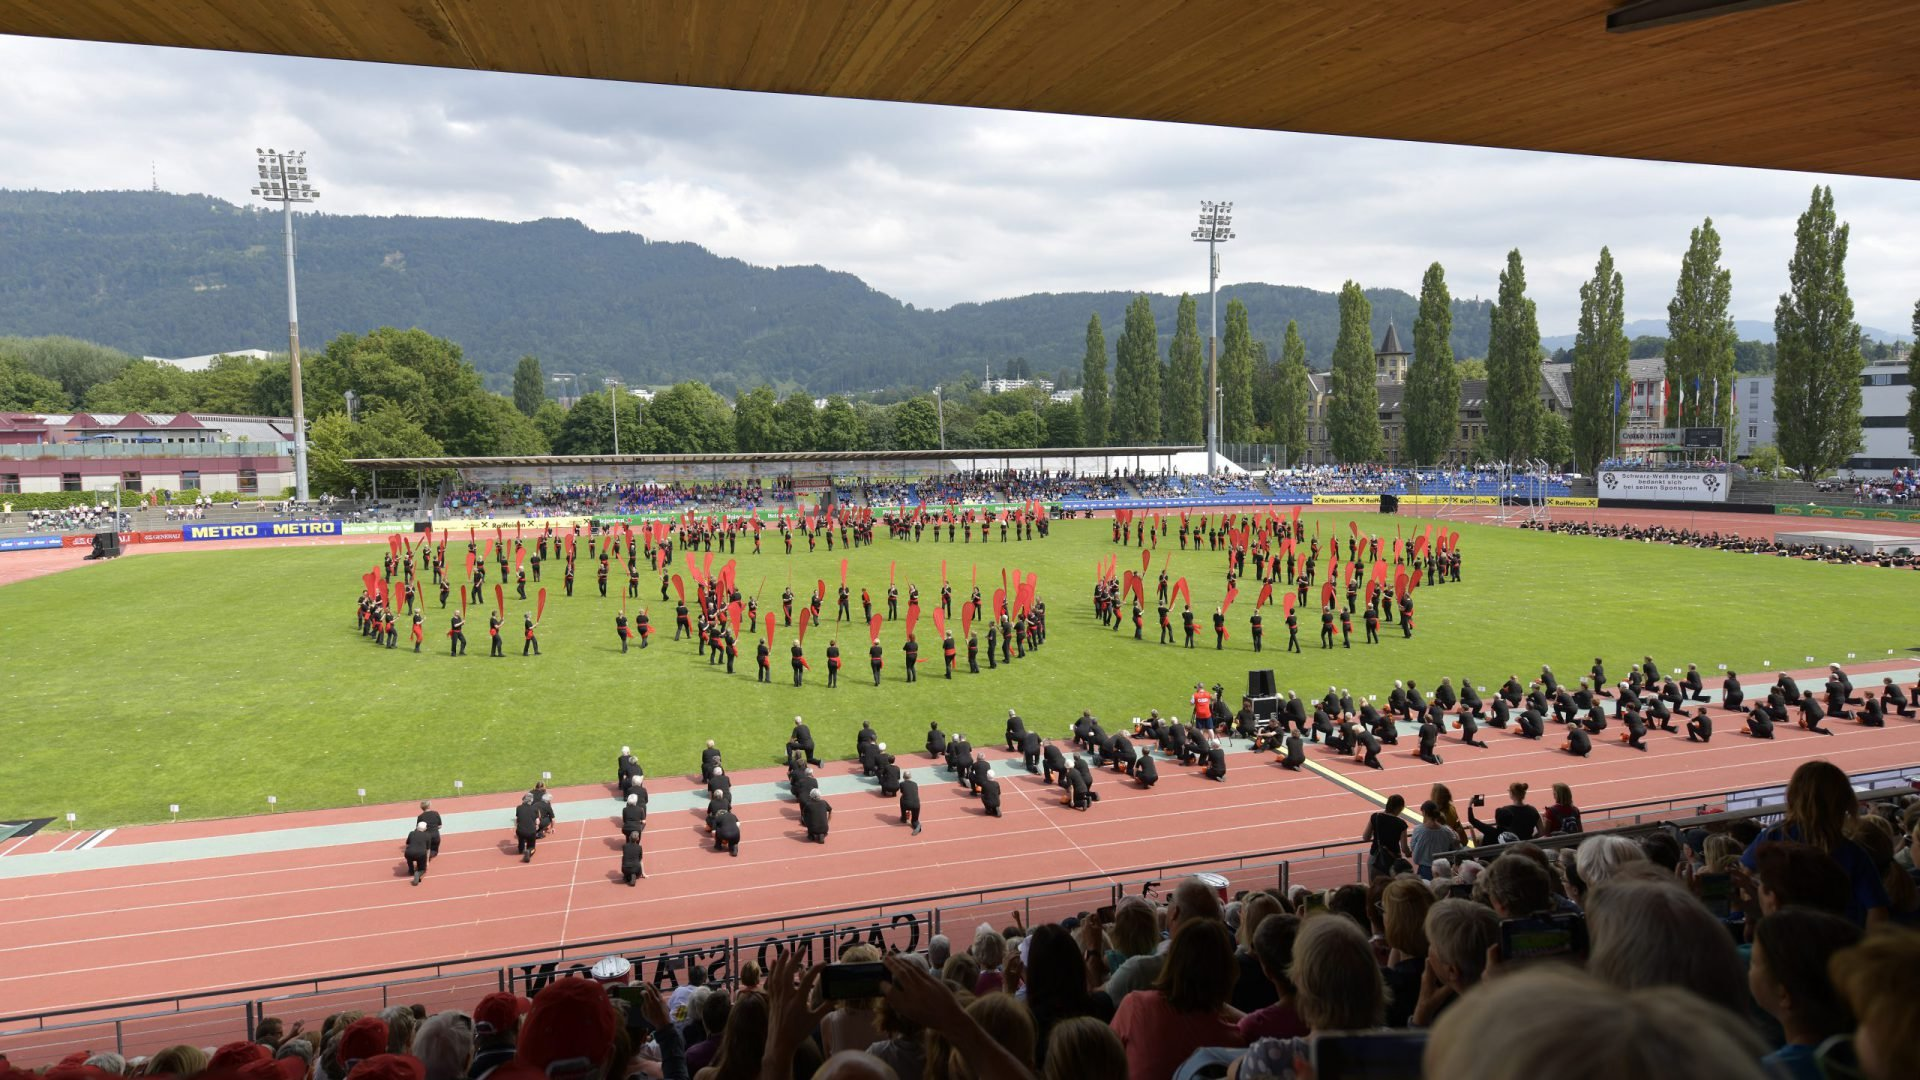 World Gymnaestrada Dornbirn/AUT 2019: large group performances, SUI01+02